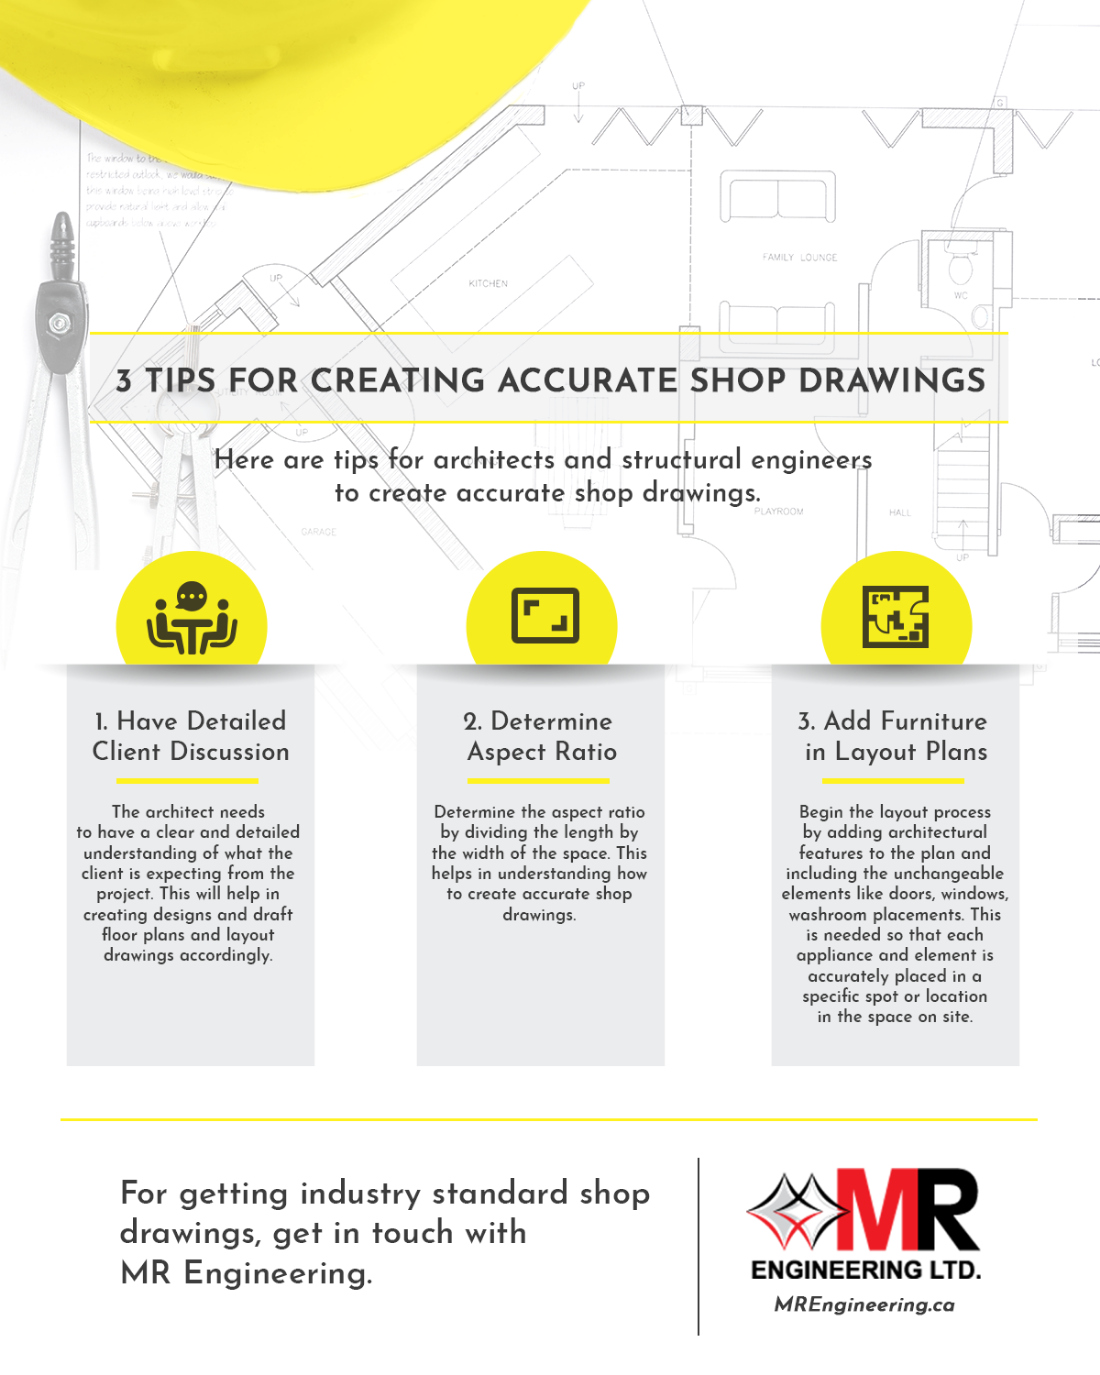 Tips For Creating Accurate Shop Drawings